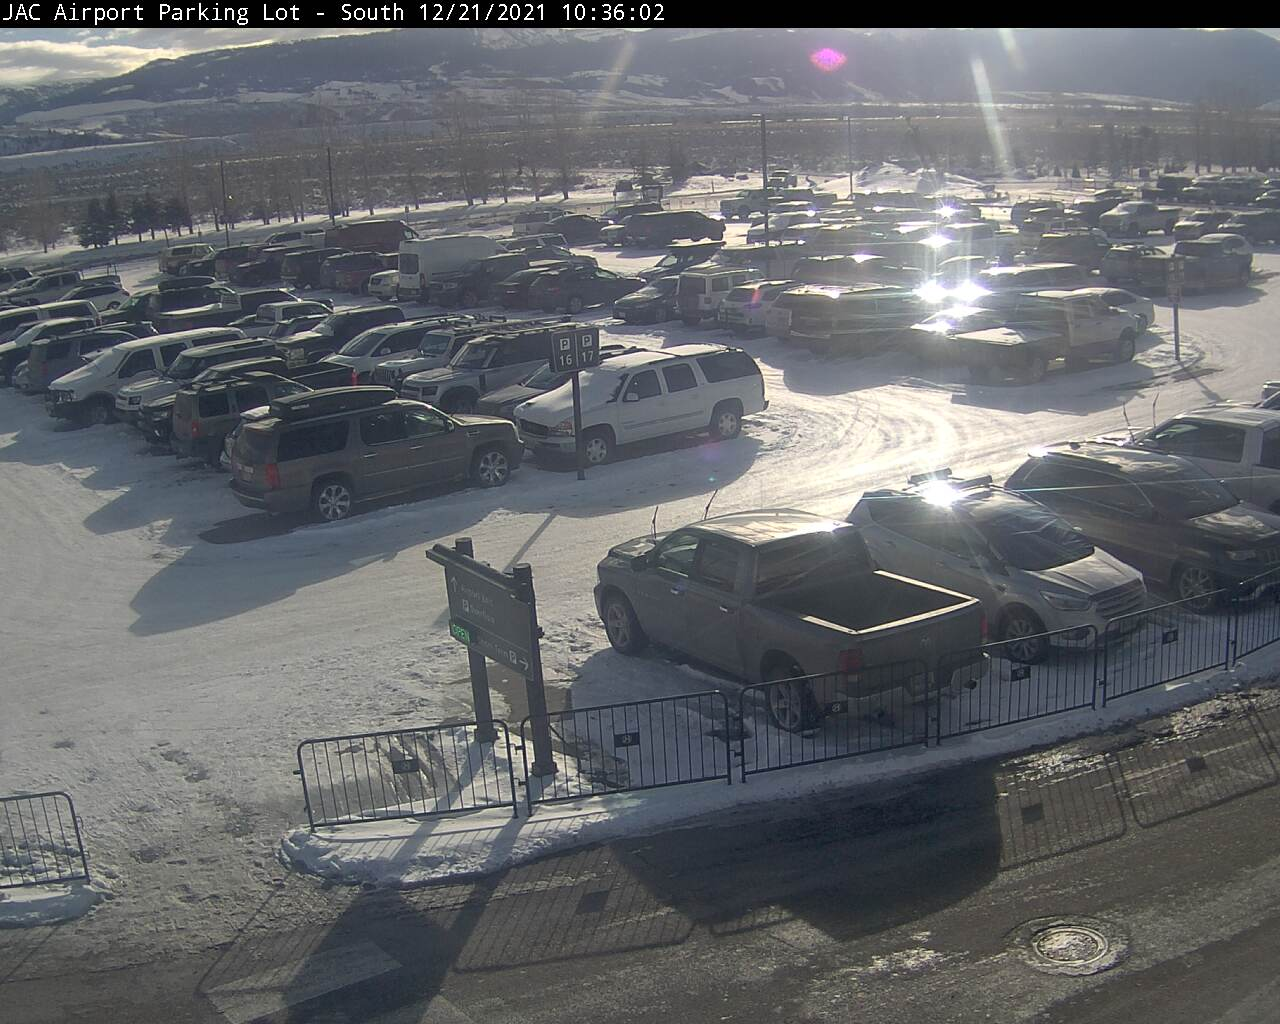 Jackson Hole Airport Webcam - South Parking Lot